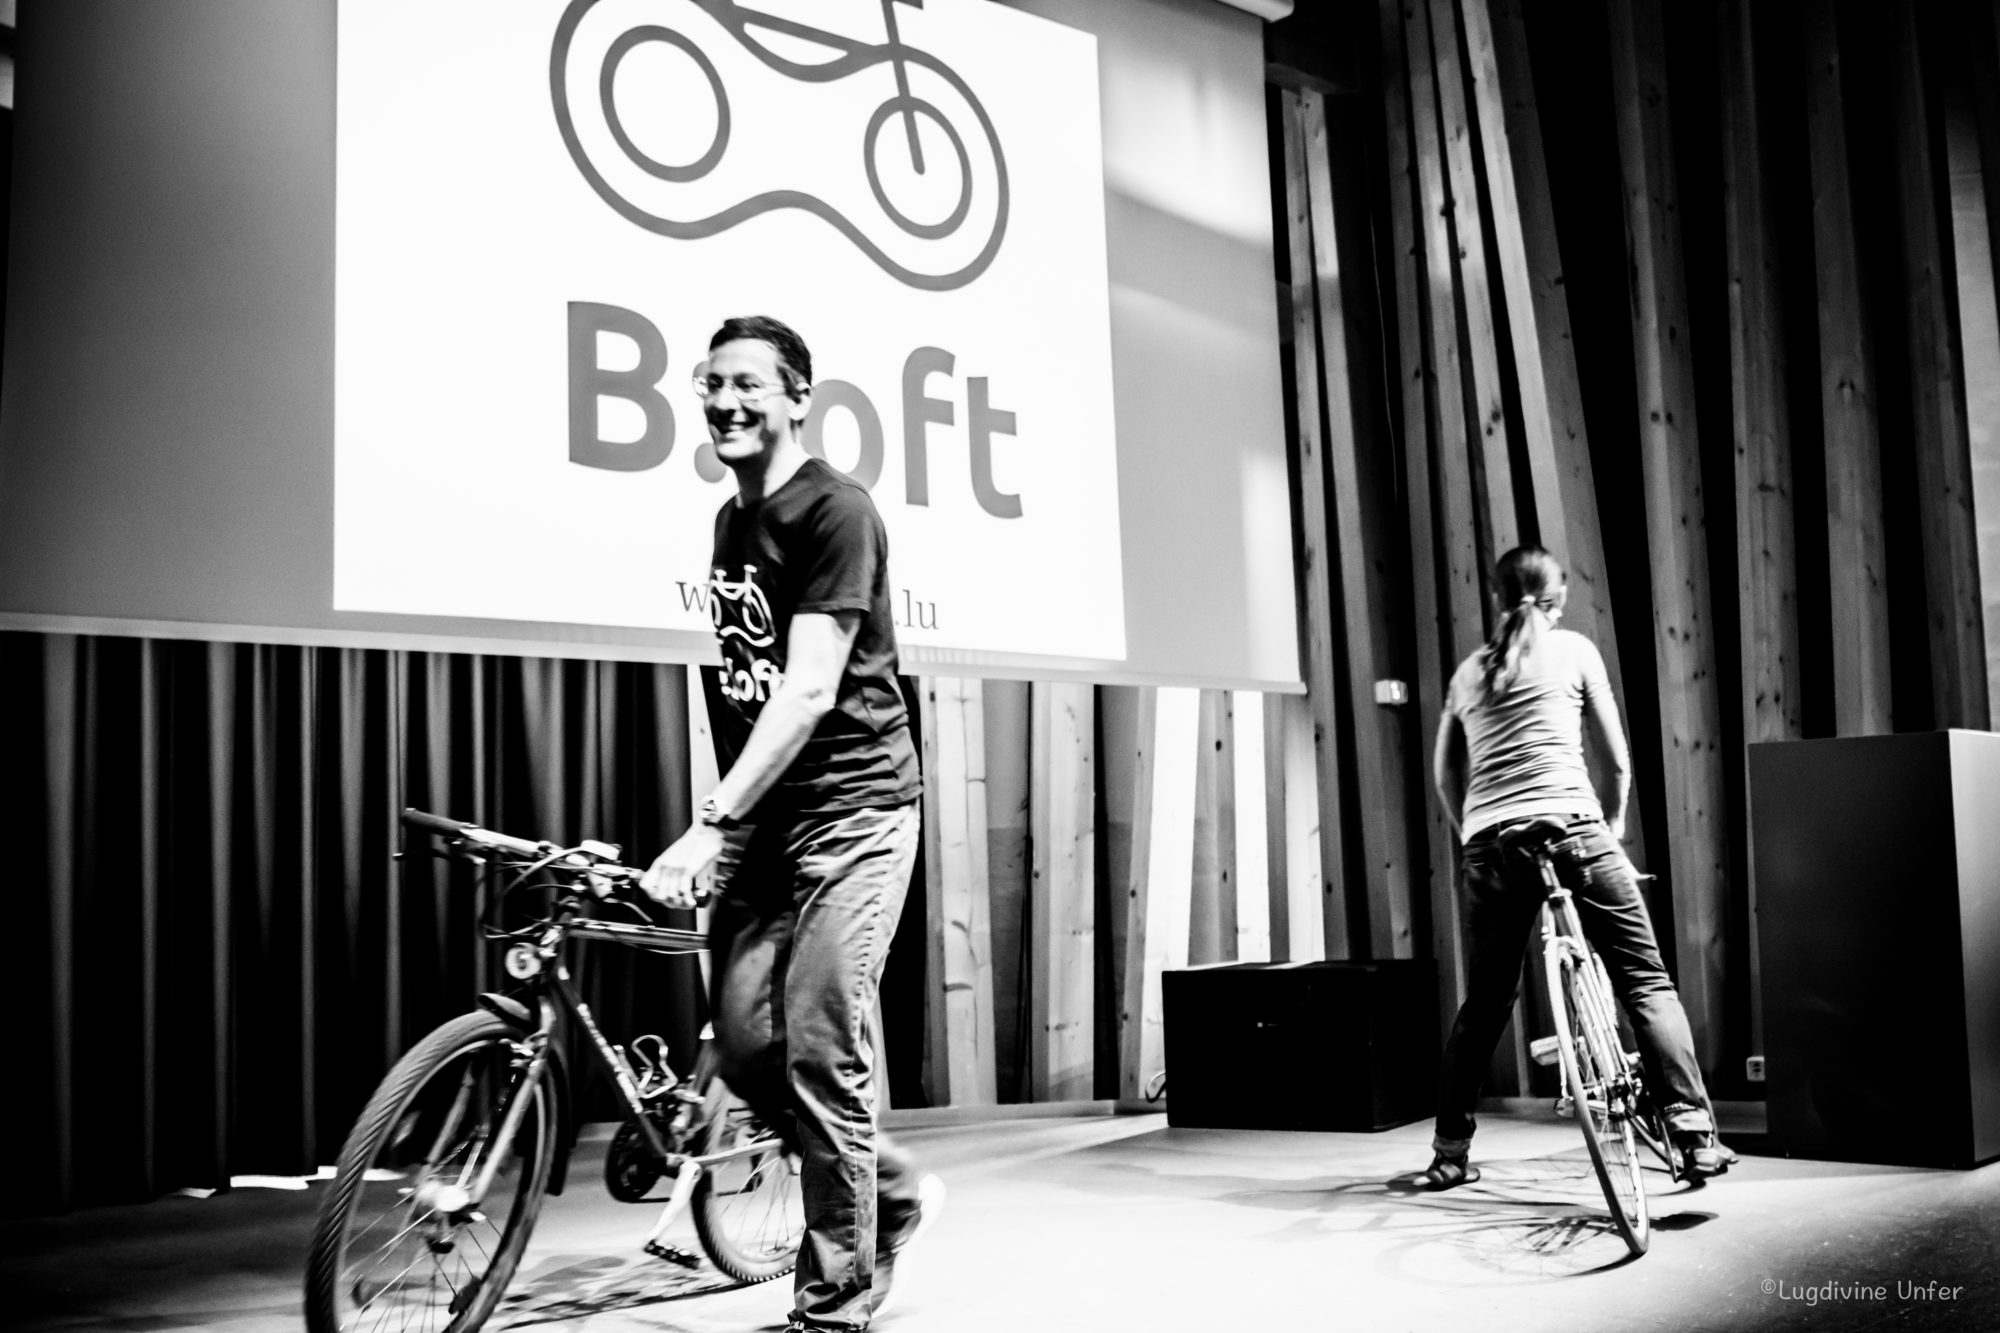 B_W-Bloft-FilmNight-Rotondes-Luxembourg-27042017-by-Lugdivine-Unfer-33